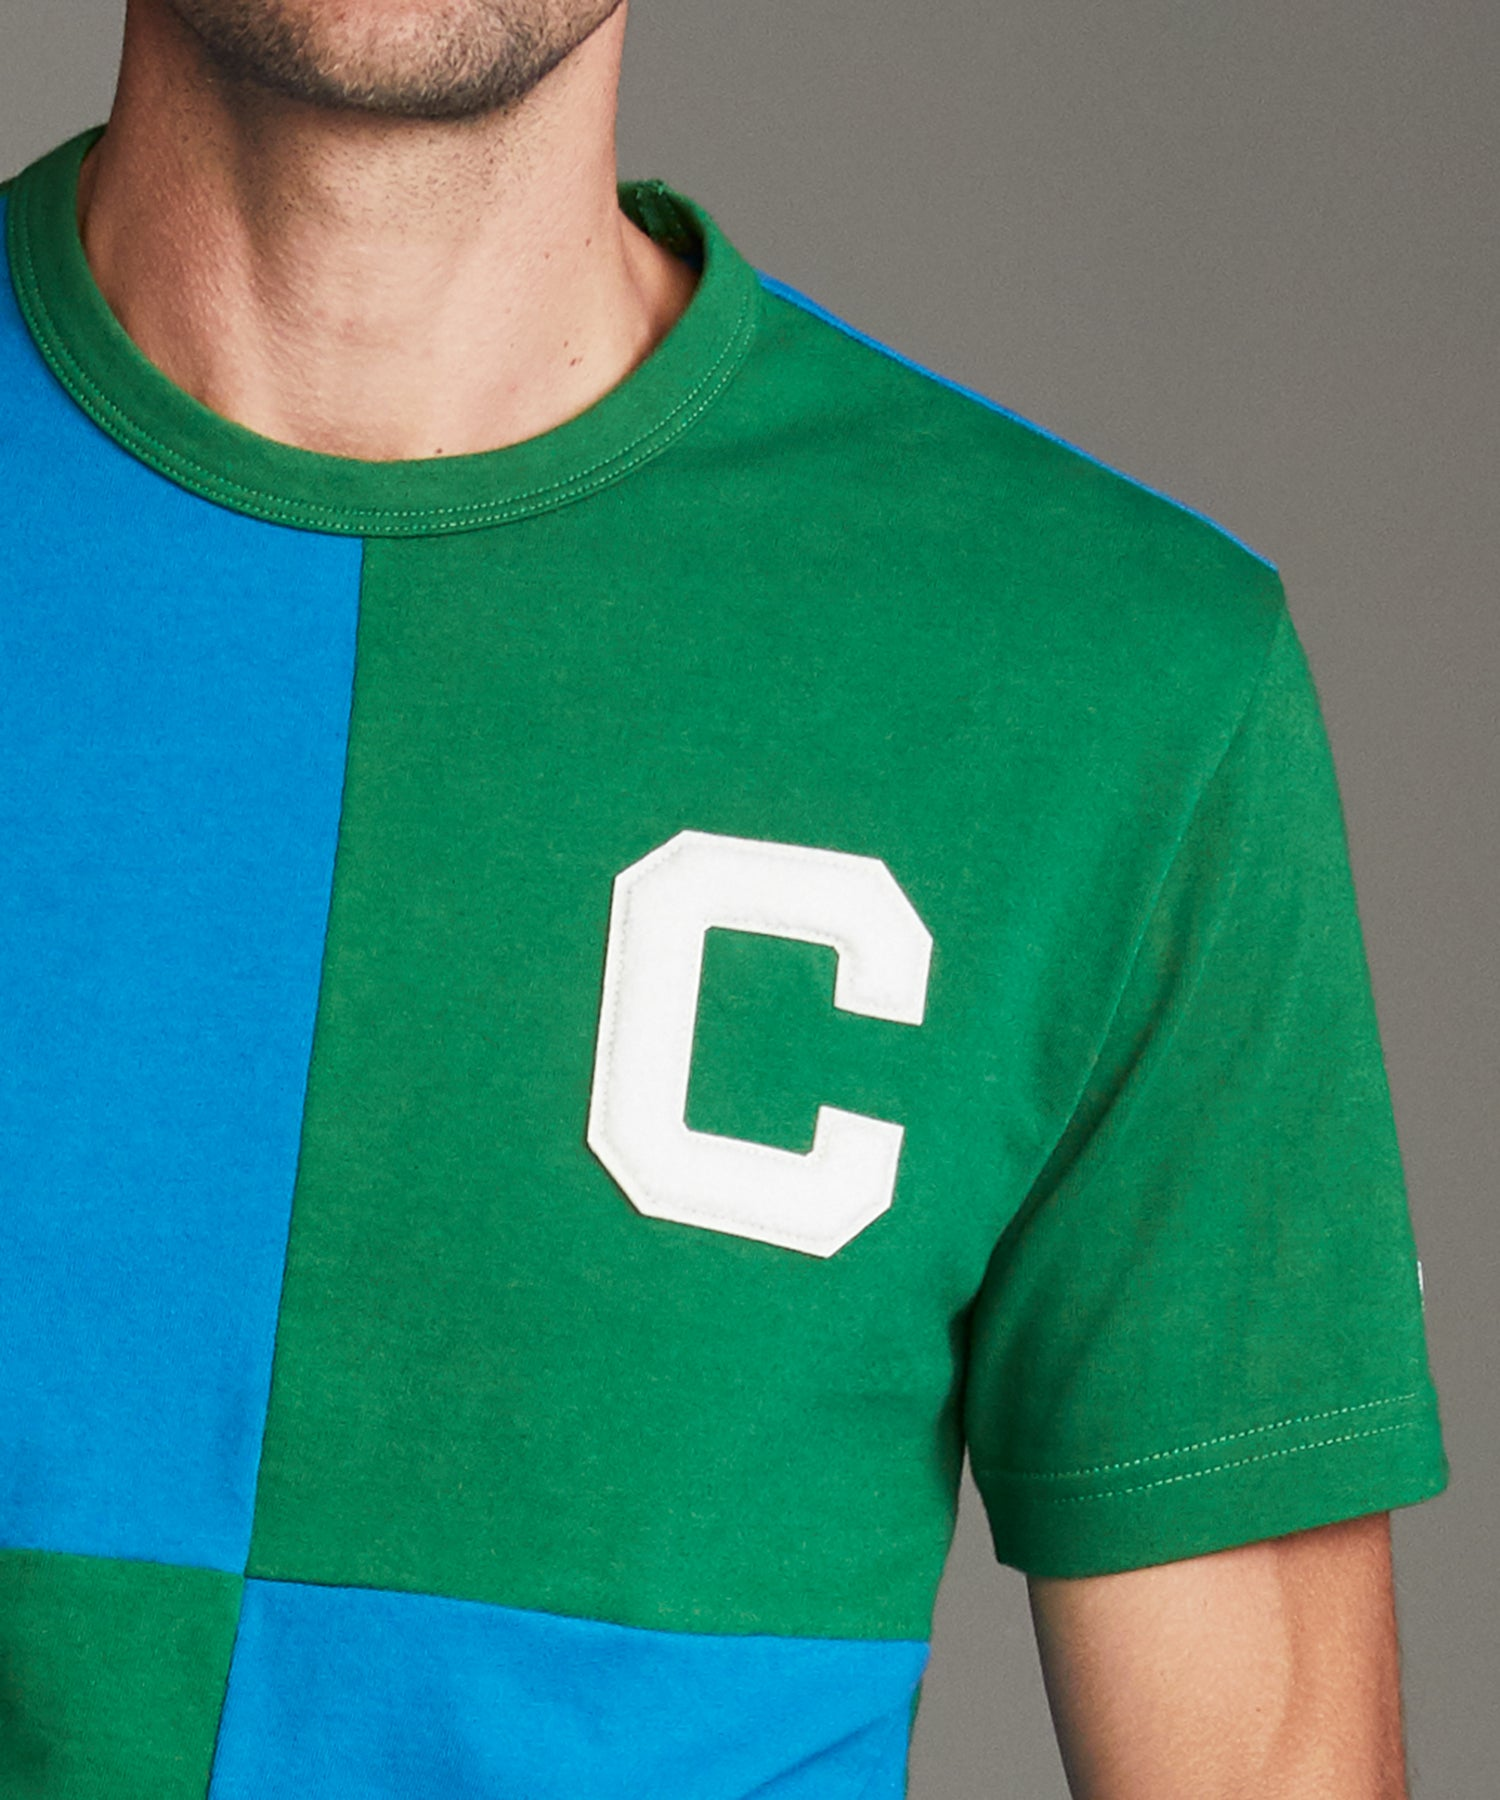 Rowing Tee in Cabana Green and Blue